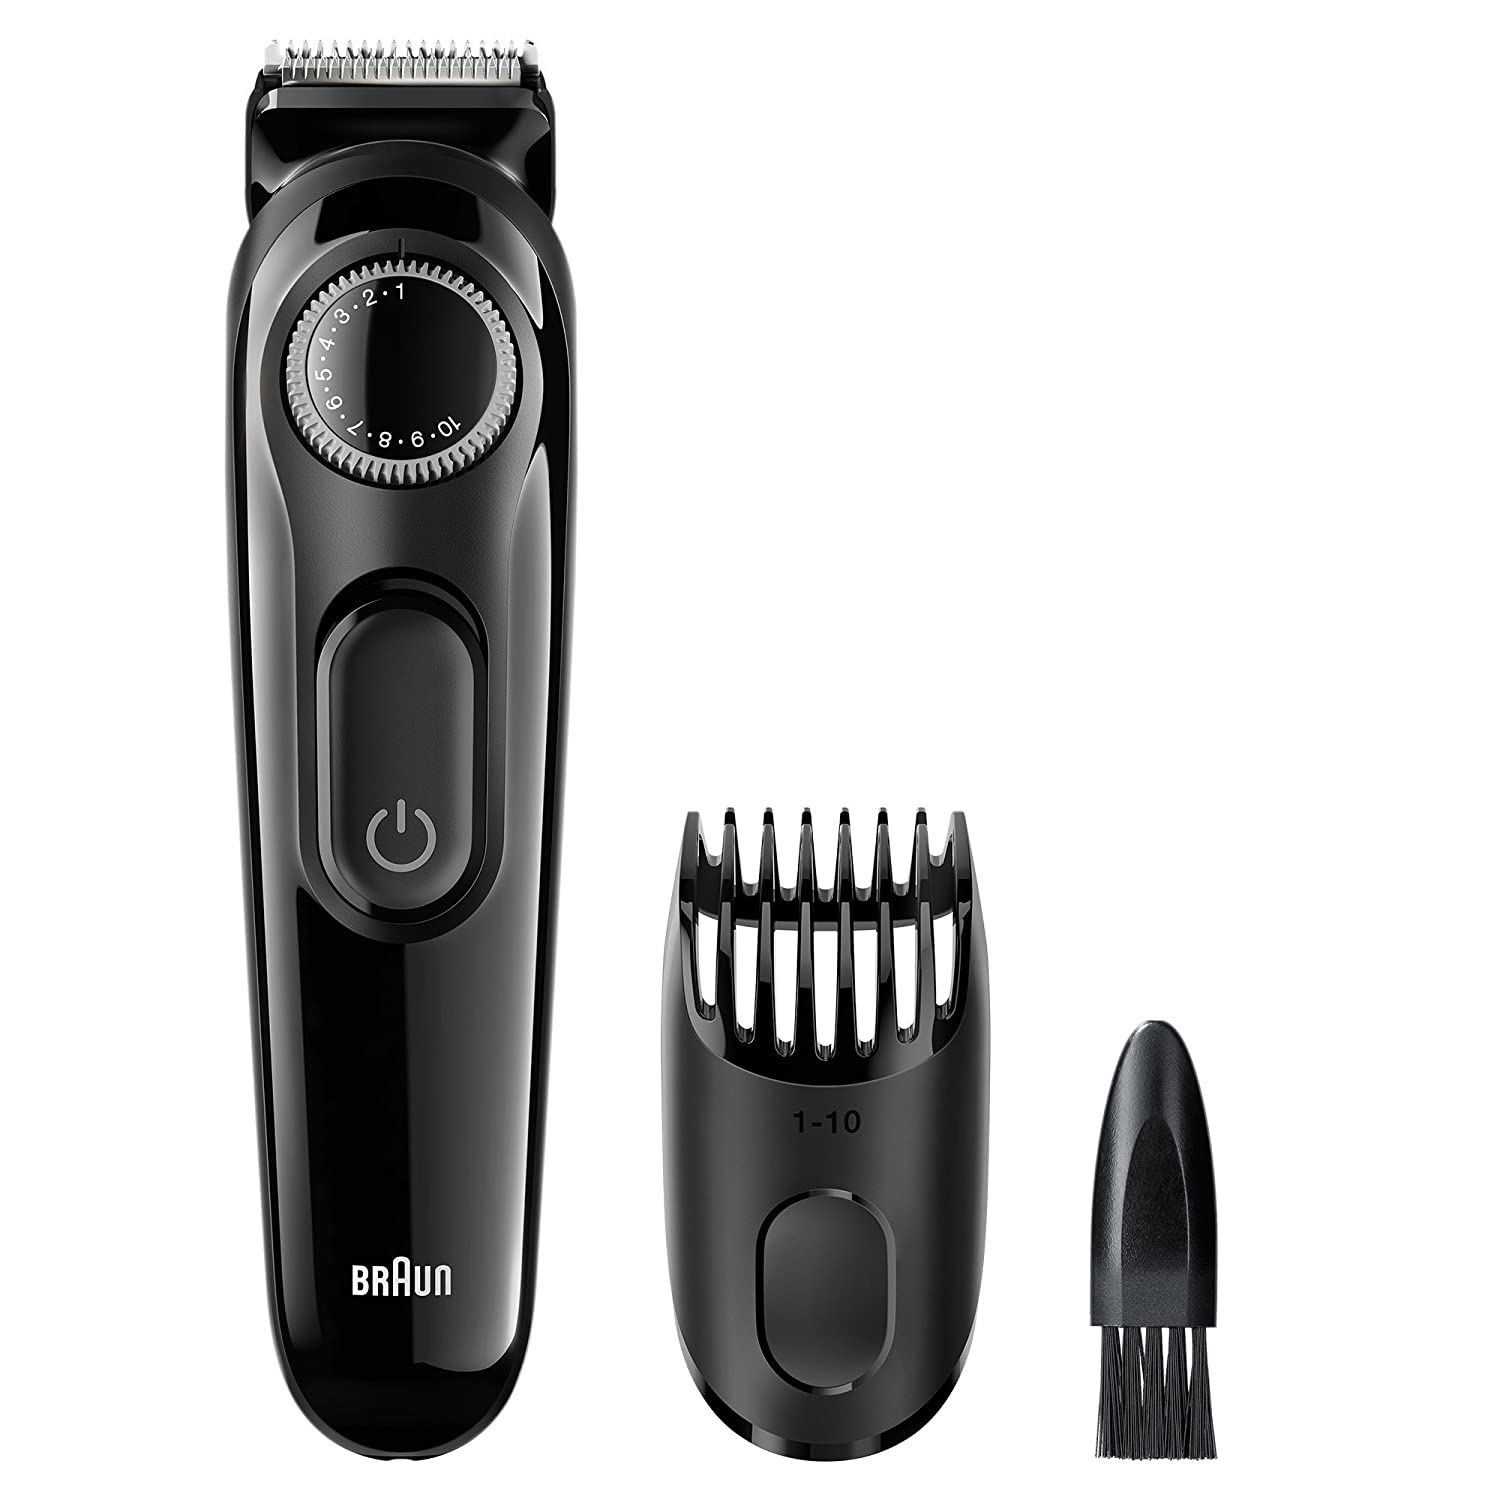 Braun Bt3020 Men's Beard trimmer, cordless & Rechargeable, Black